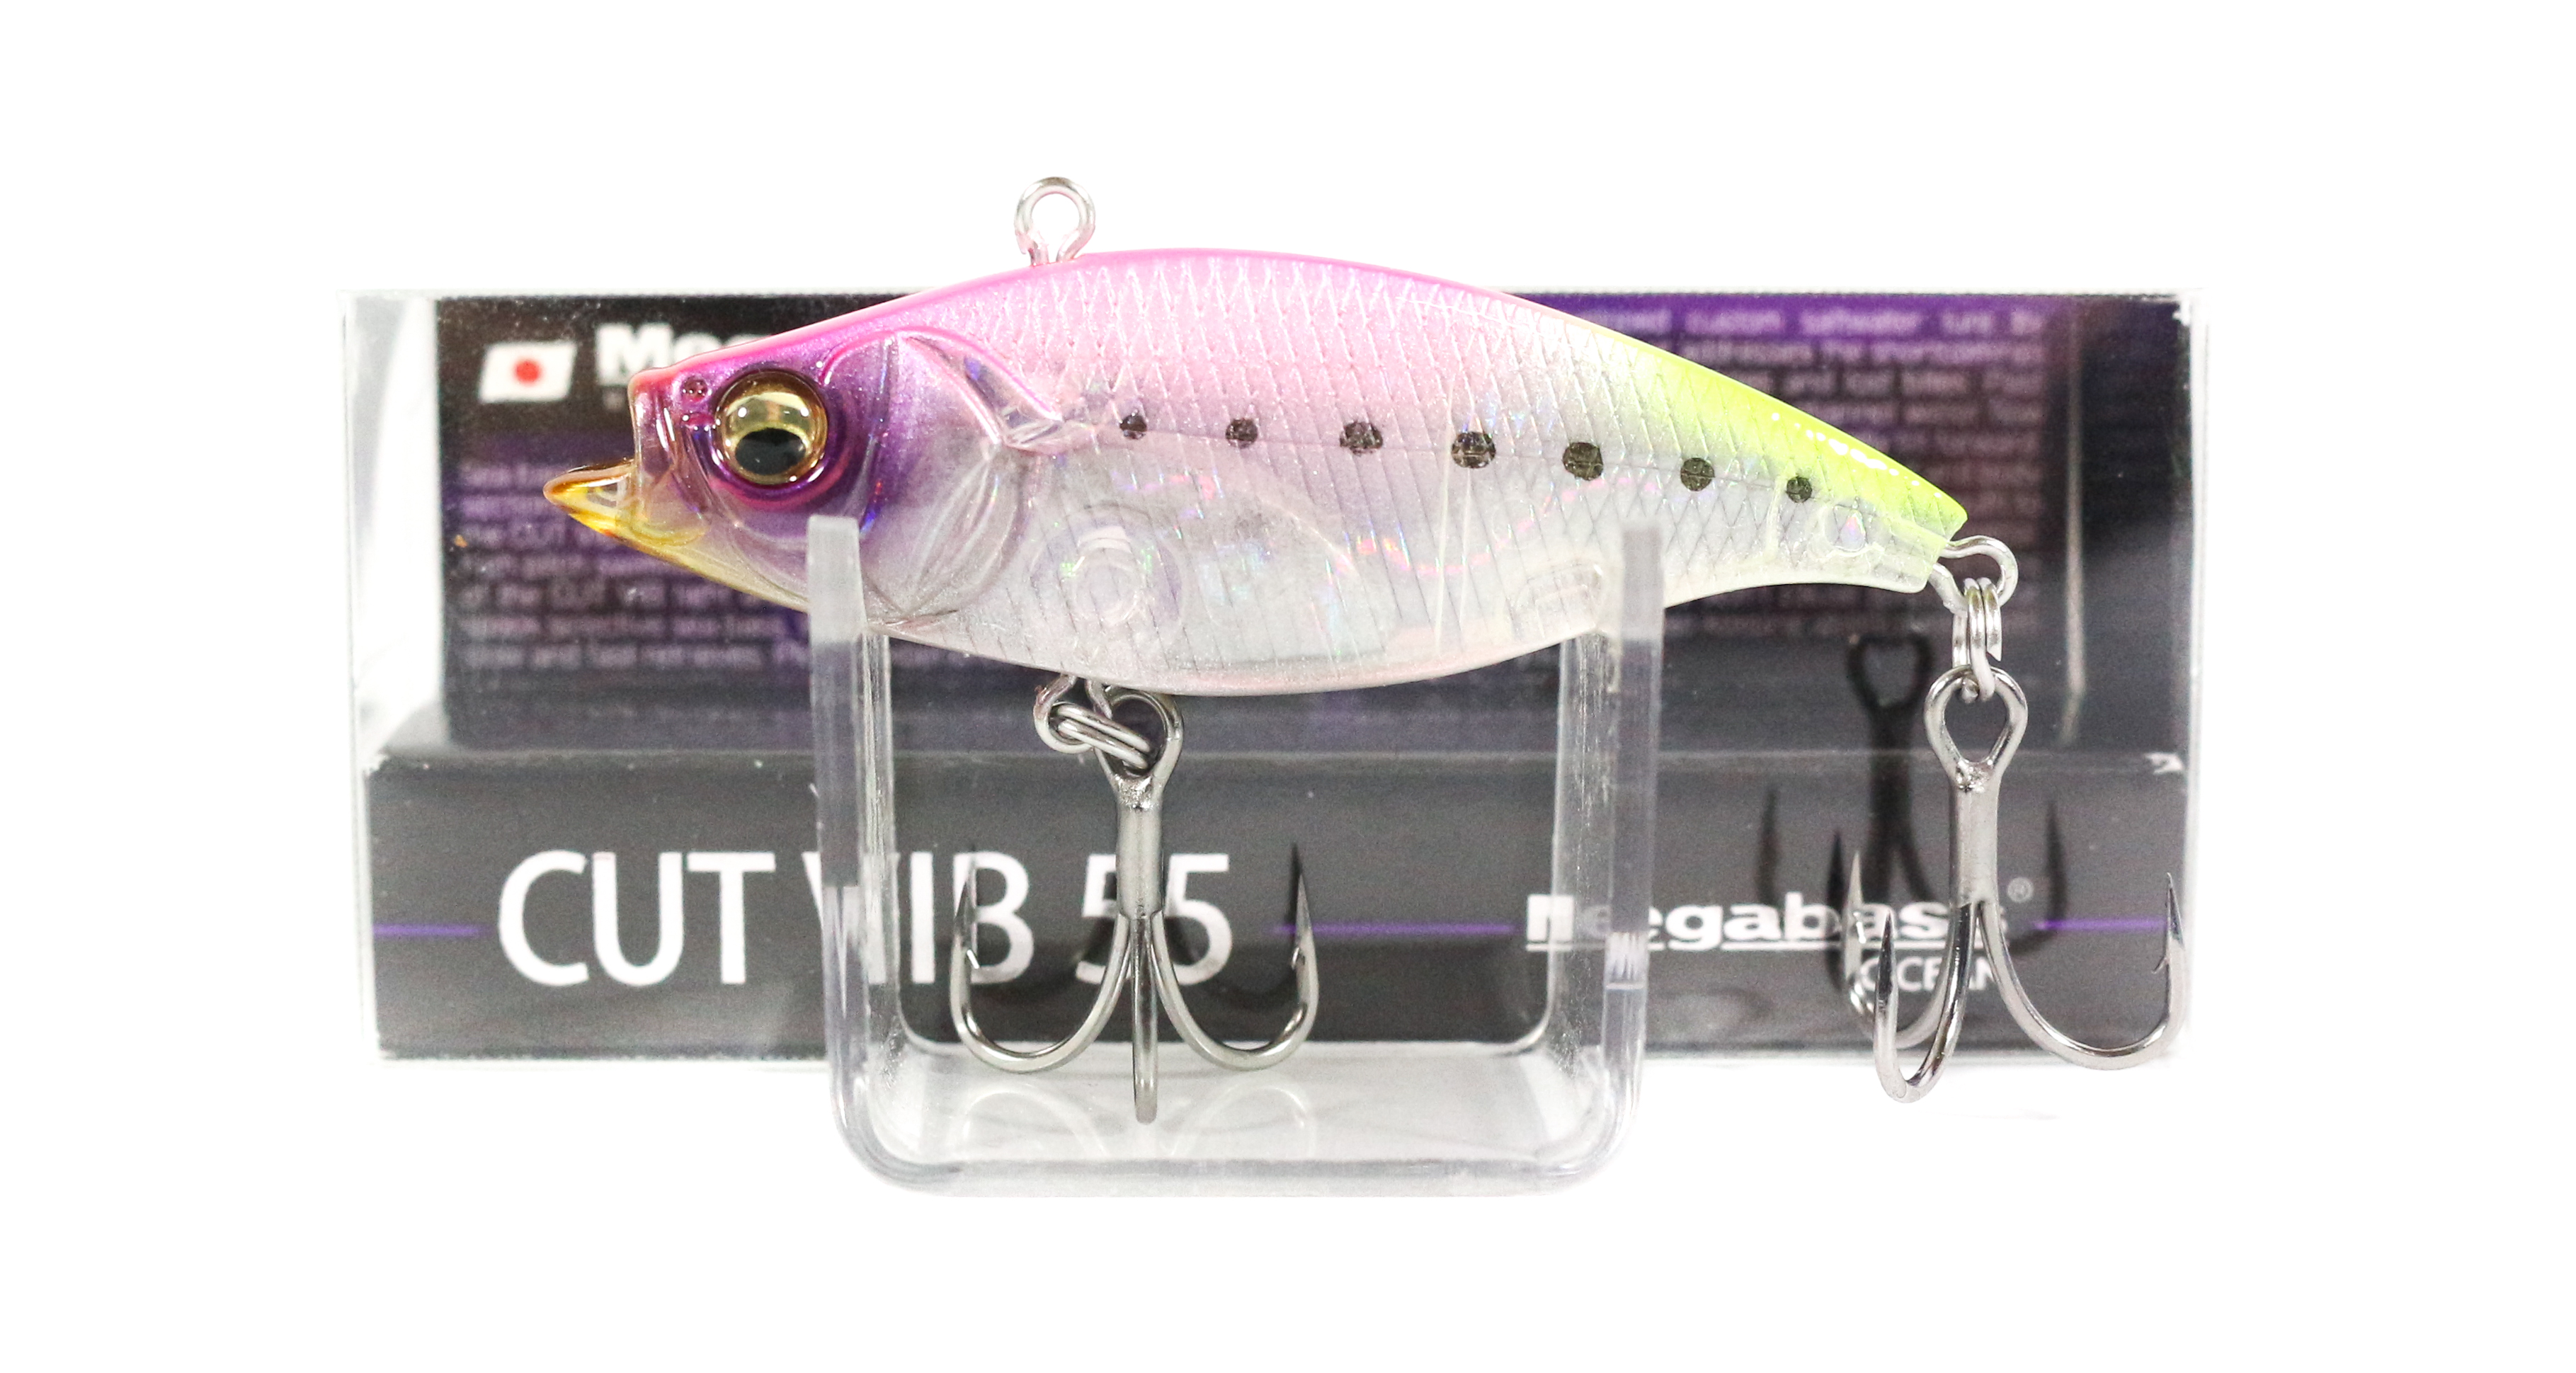 Megabass Cut Vib 55 Vibration Lure GG Tropical Iwashi (7358)